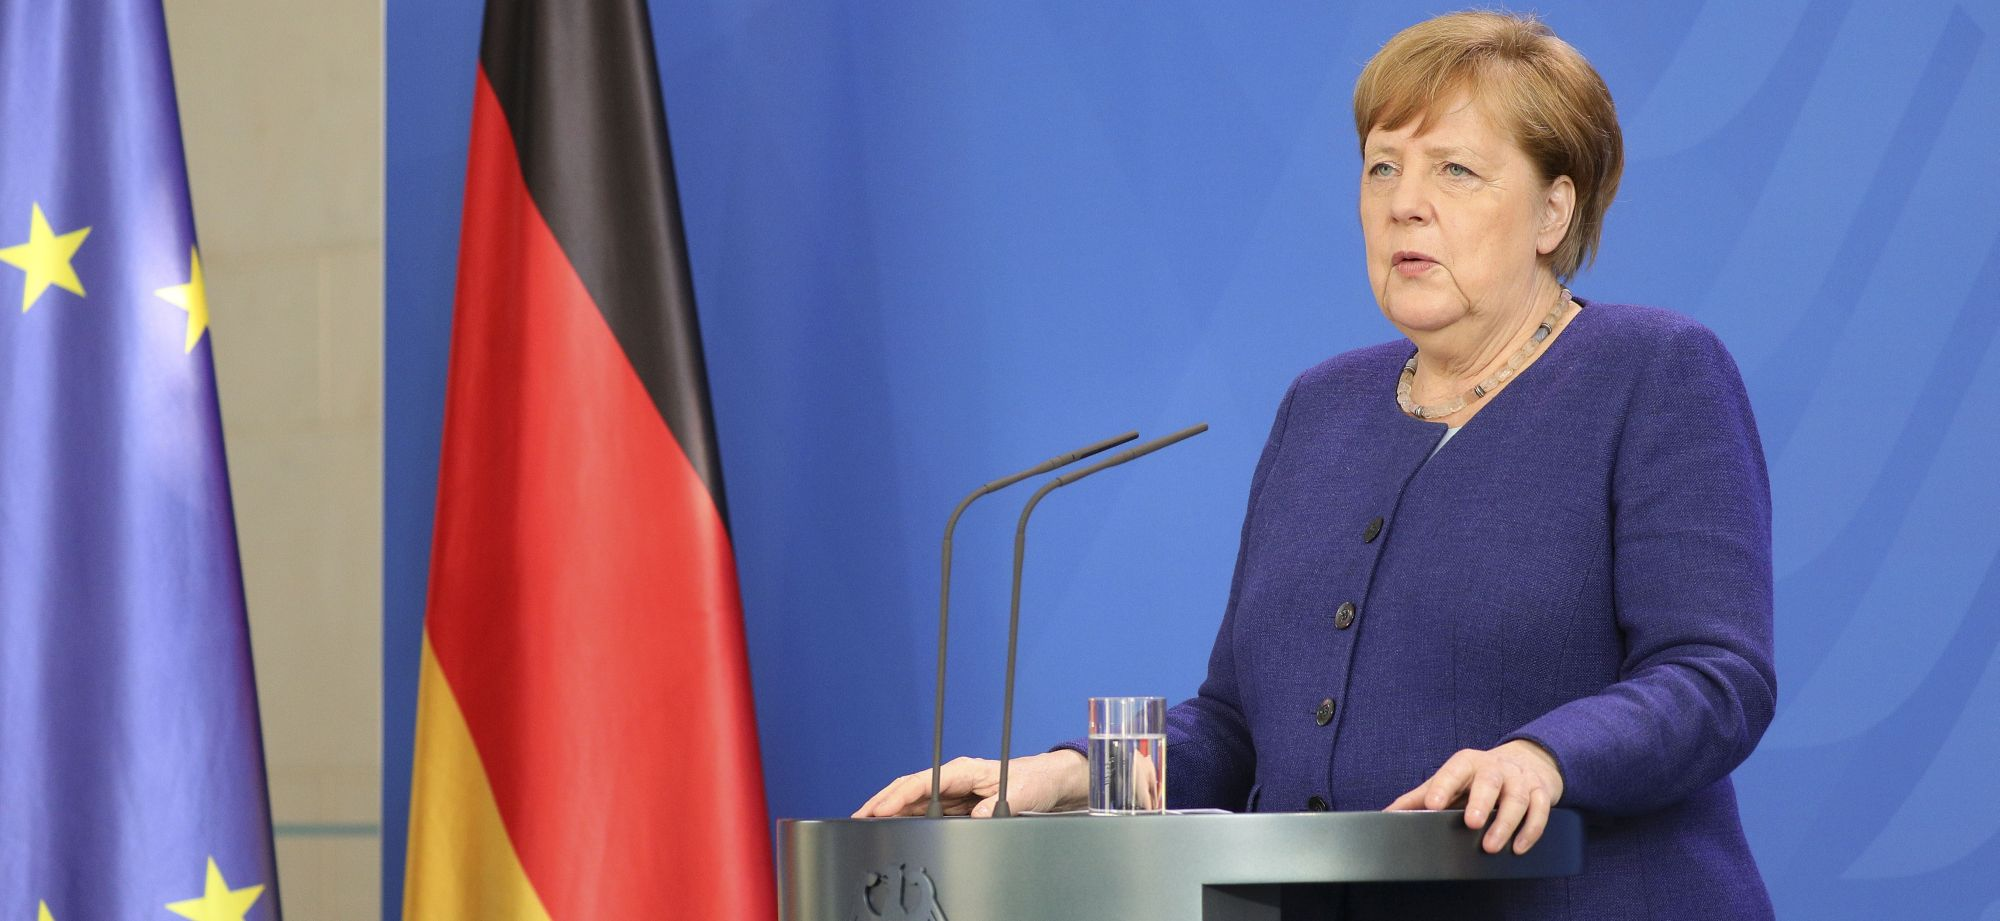 Merkel Speaks To Media Following Videoconference With Financial Institutions